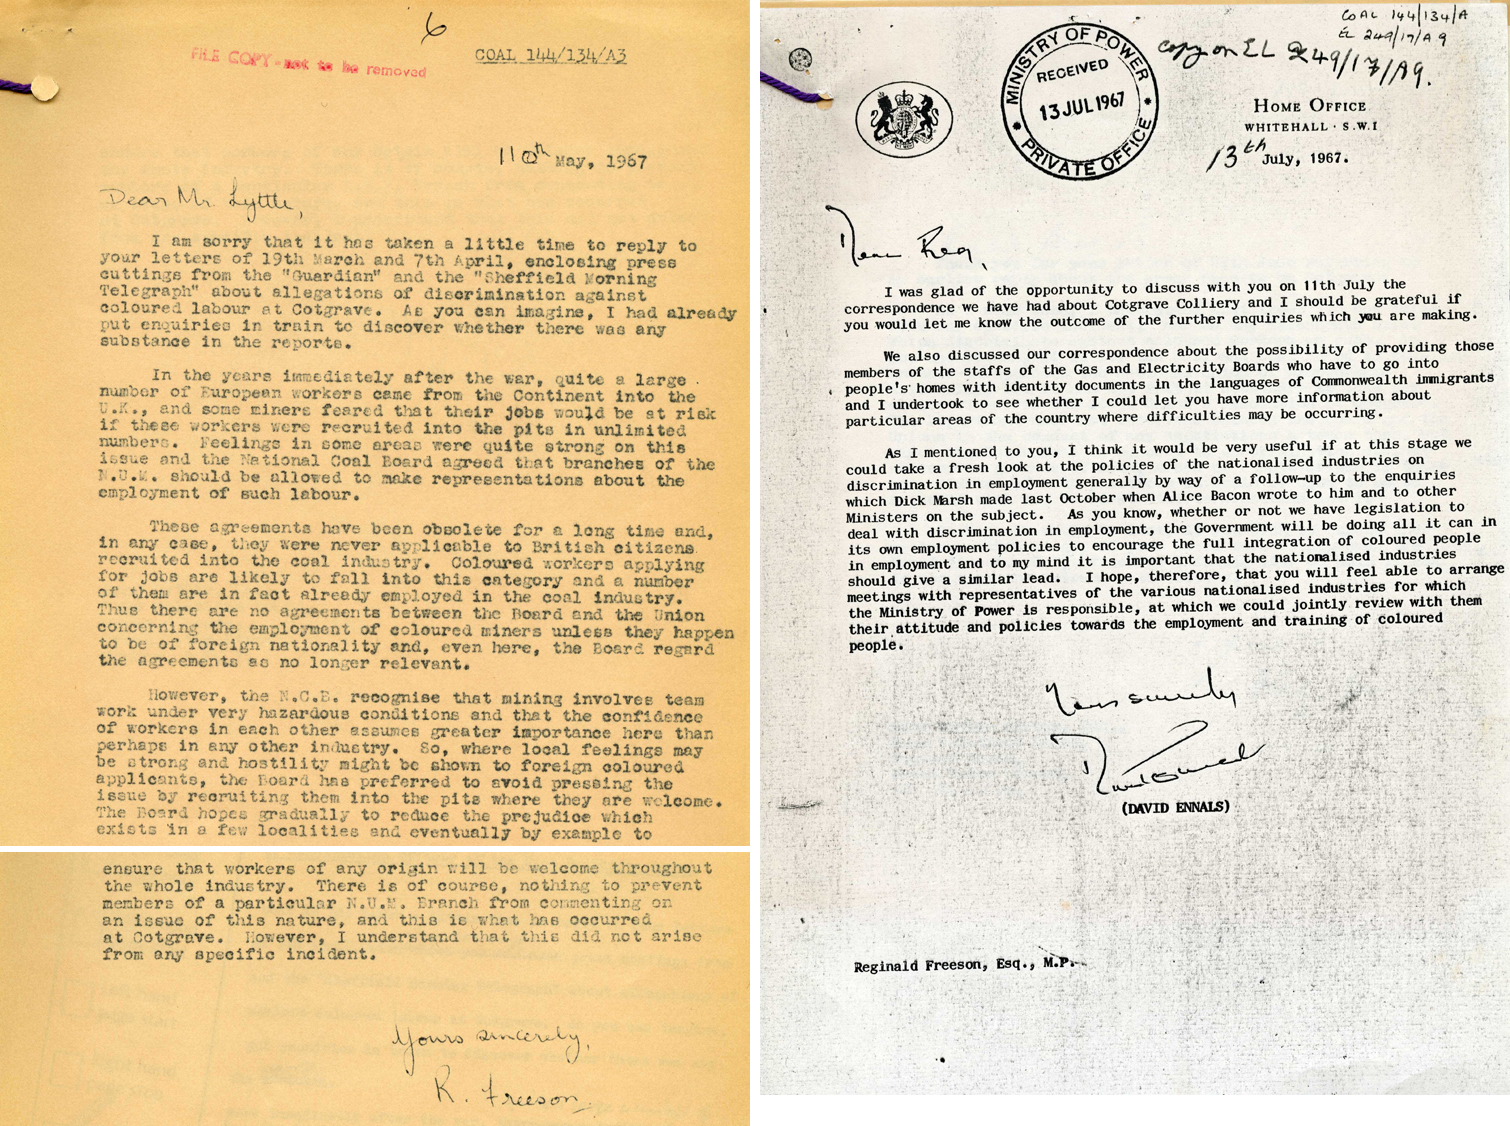 Correspondence between the Ministry of Power, Race Relations Board and Home Office, 1967 (POWE 52/199)